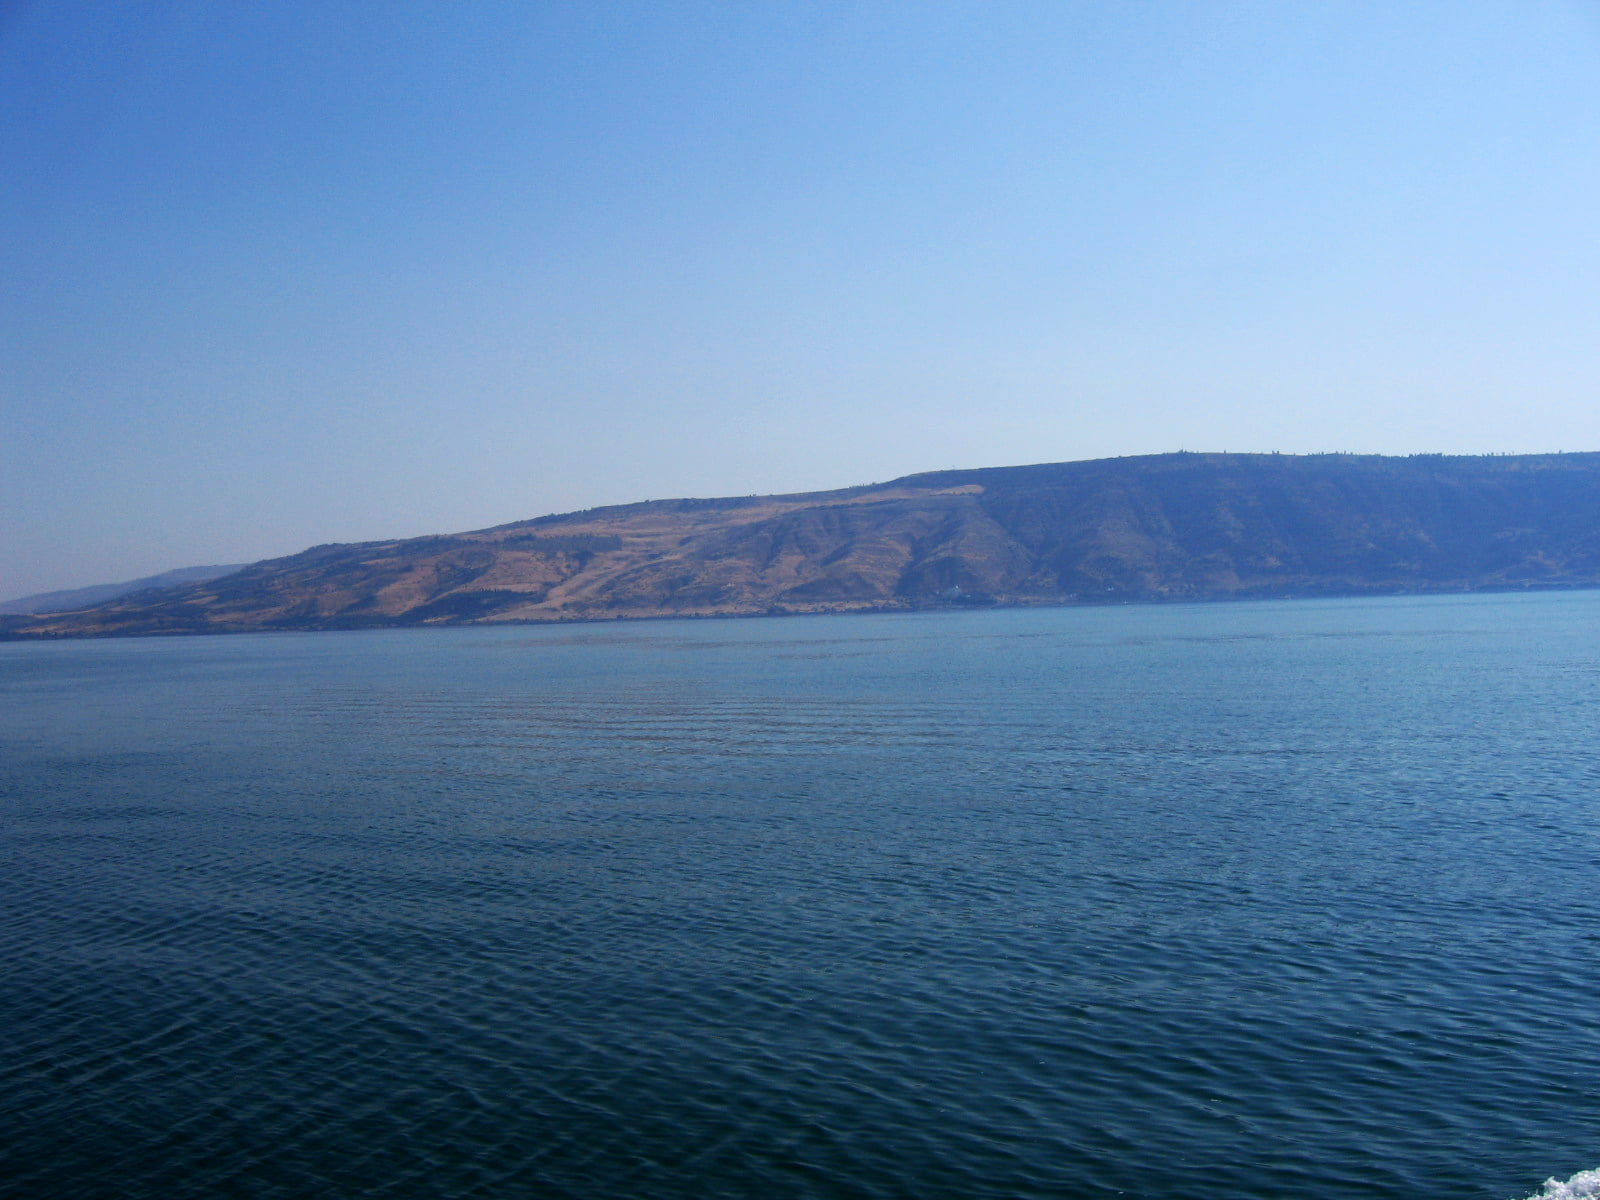 In October 2017, the Water Authority reported that the water of the Sea of Galilee has shrunk to the lowest level ever recorded. Courtesy